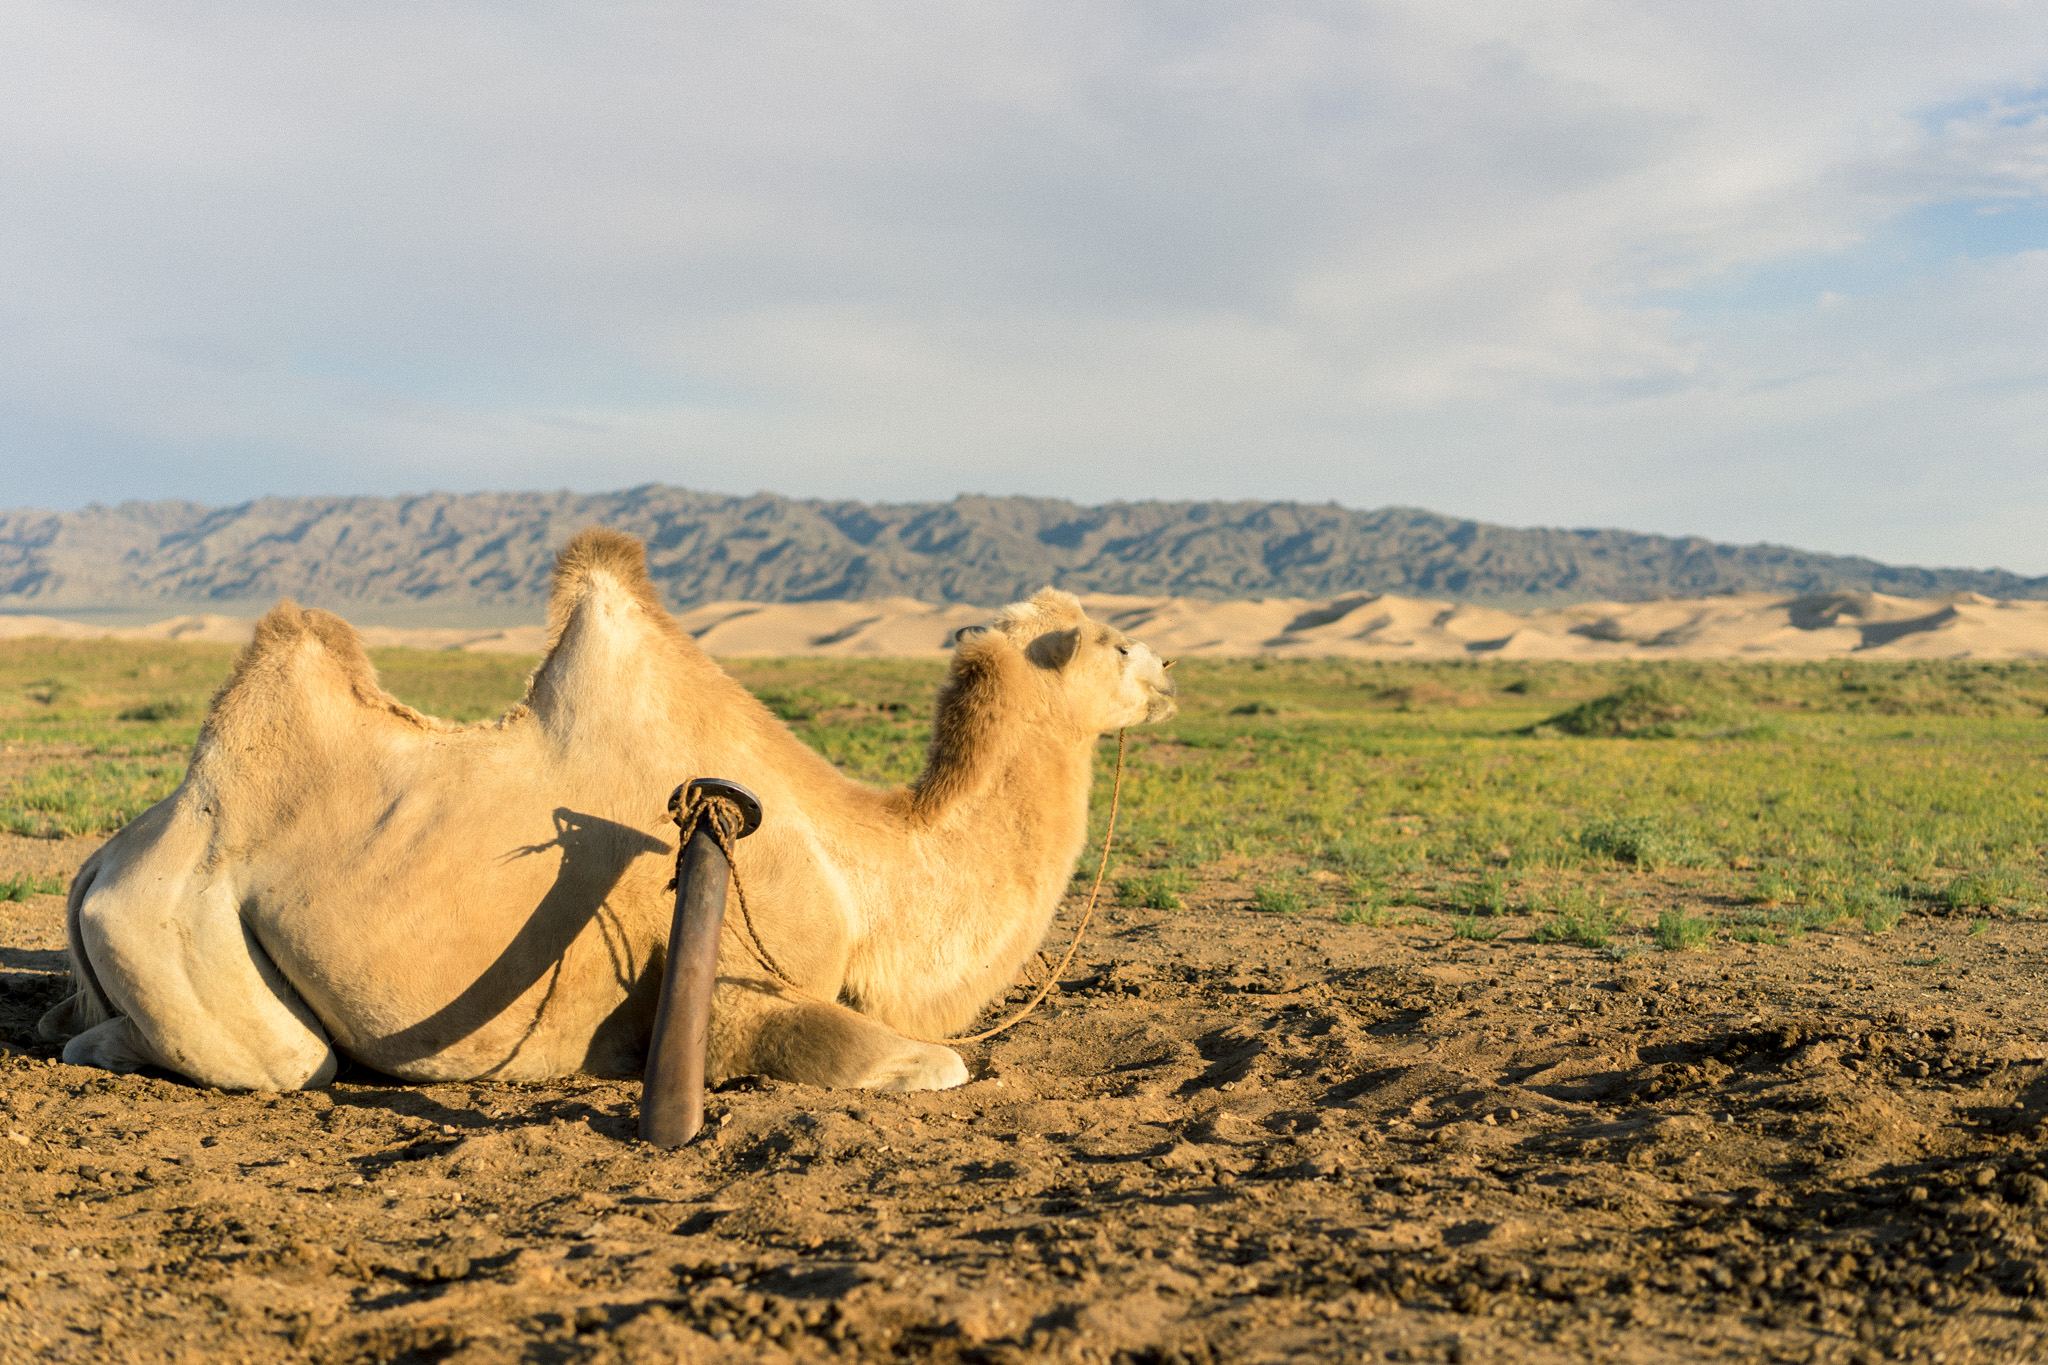 Just a camel chilling in the Gobi Desert